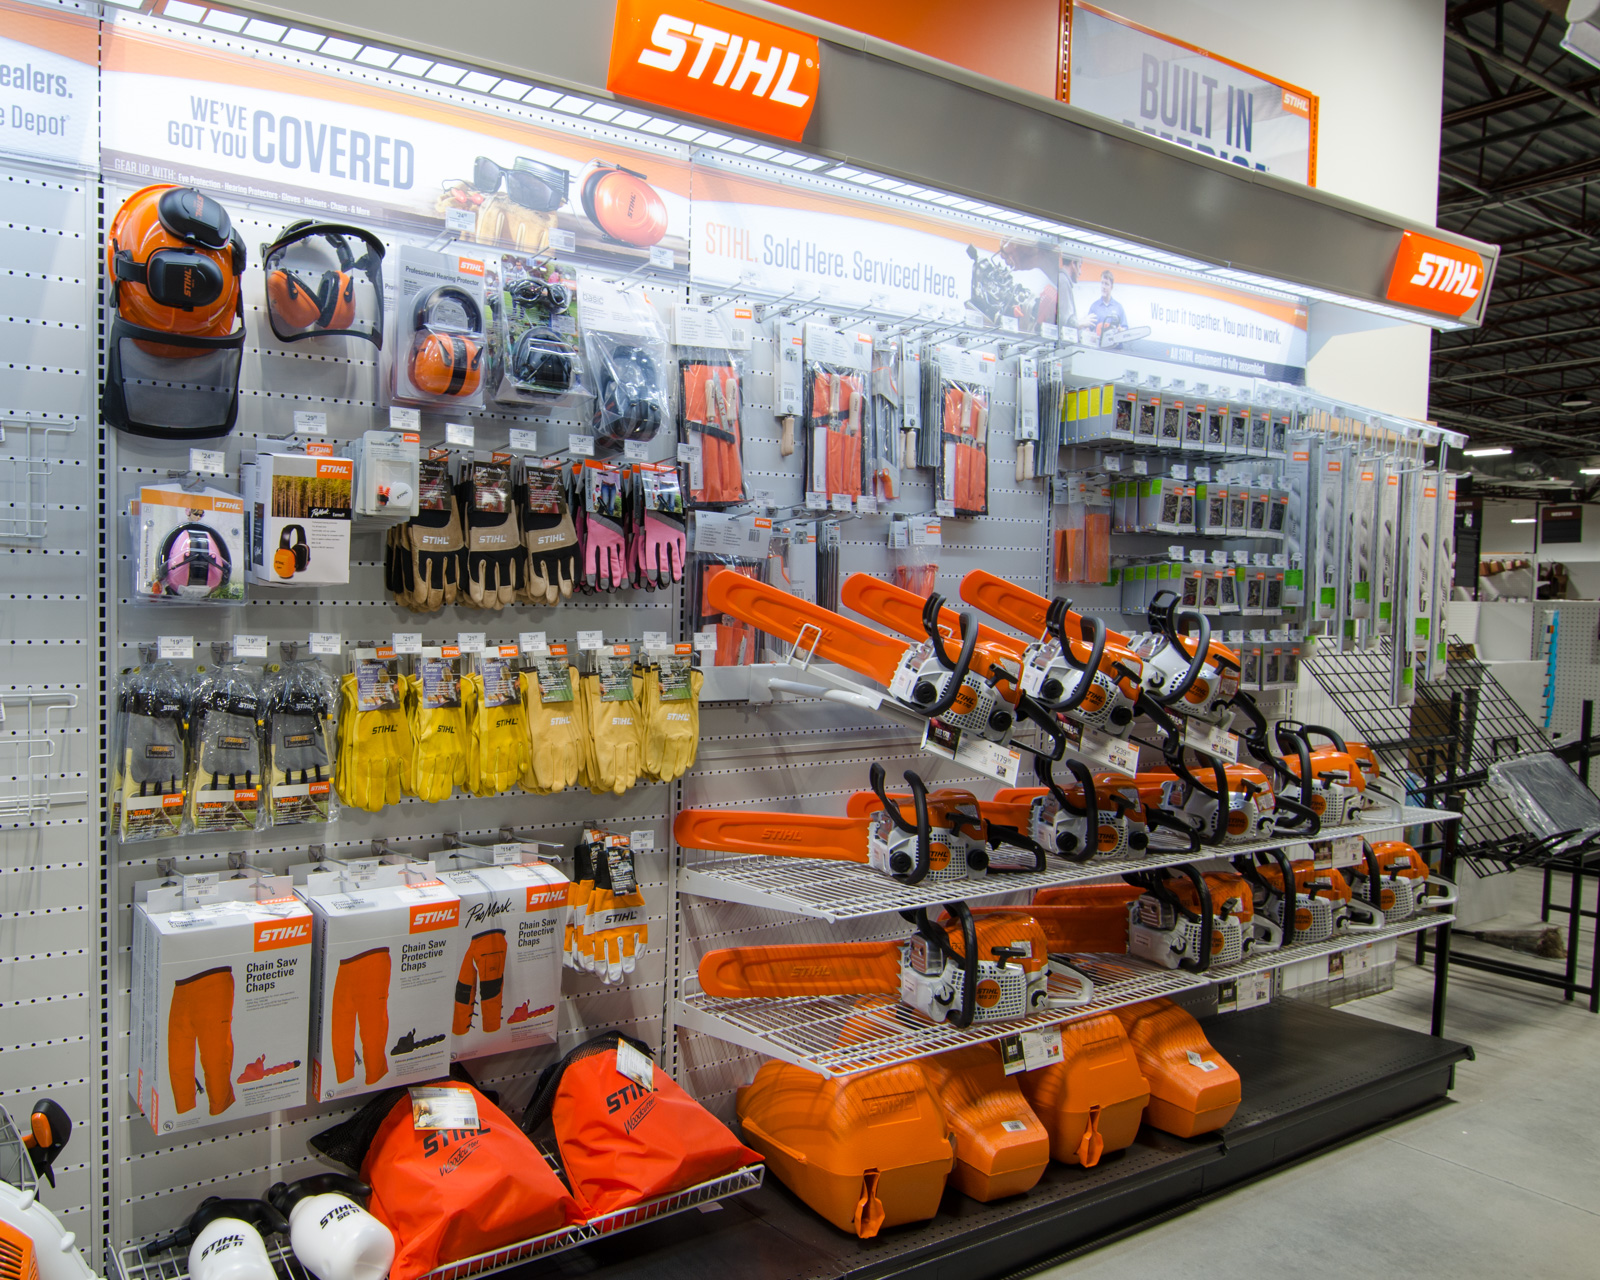 Stihl brand power tools.